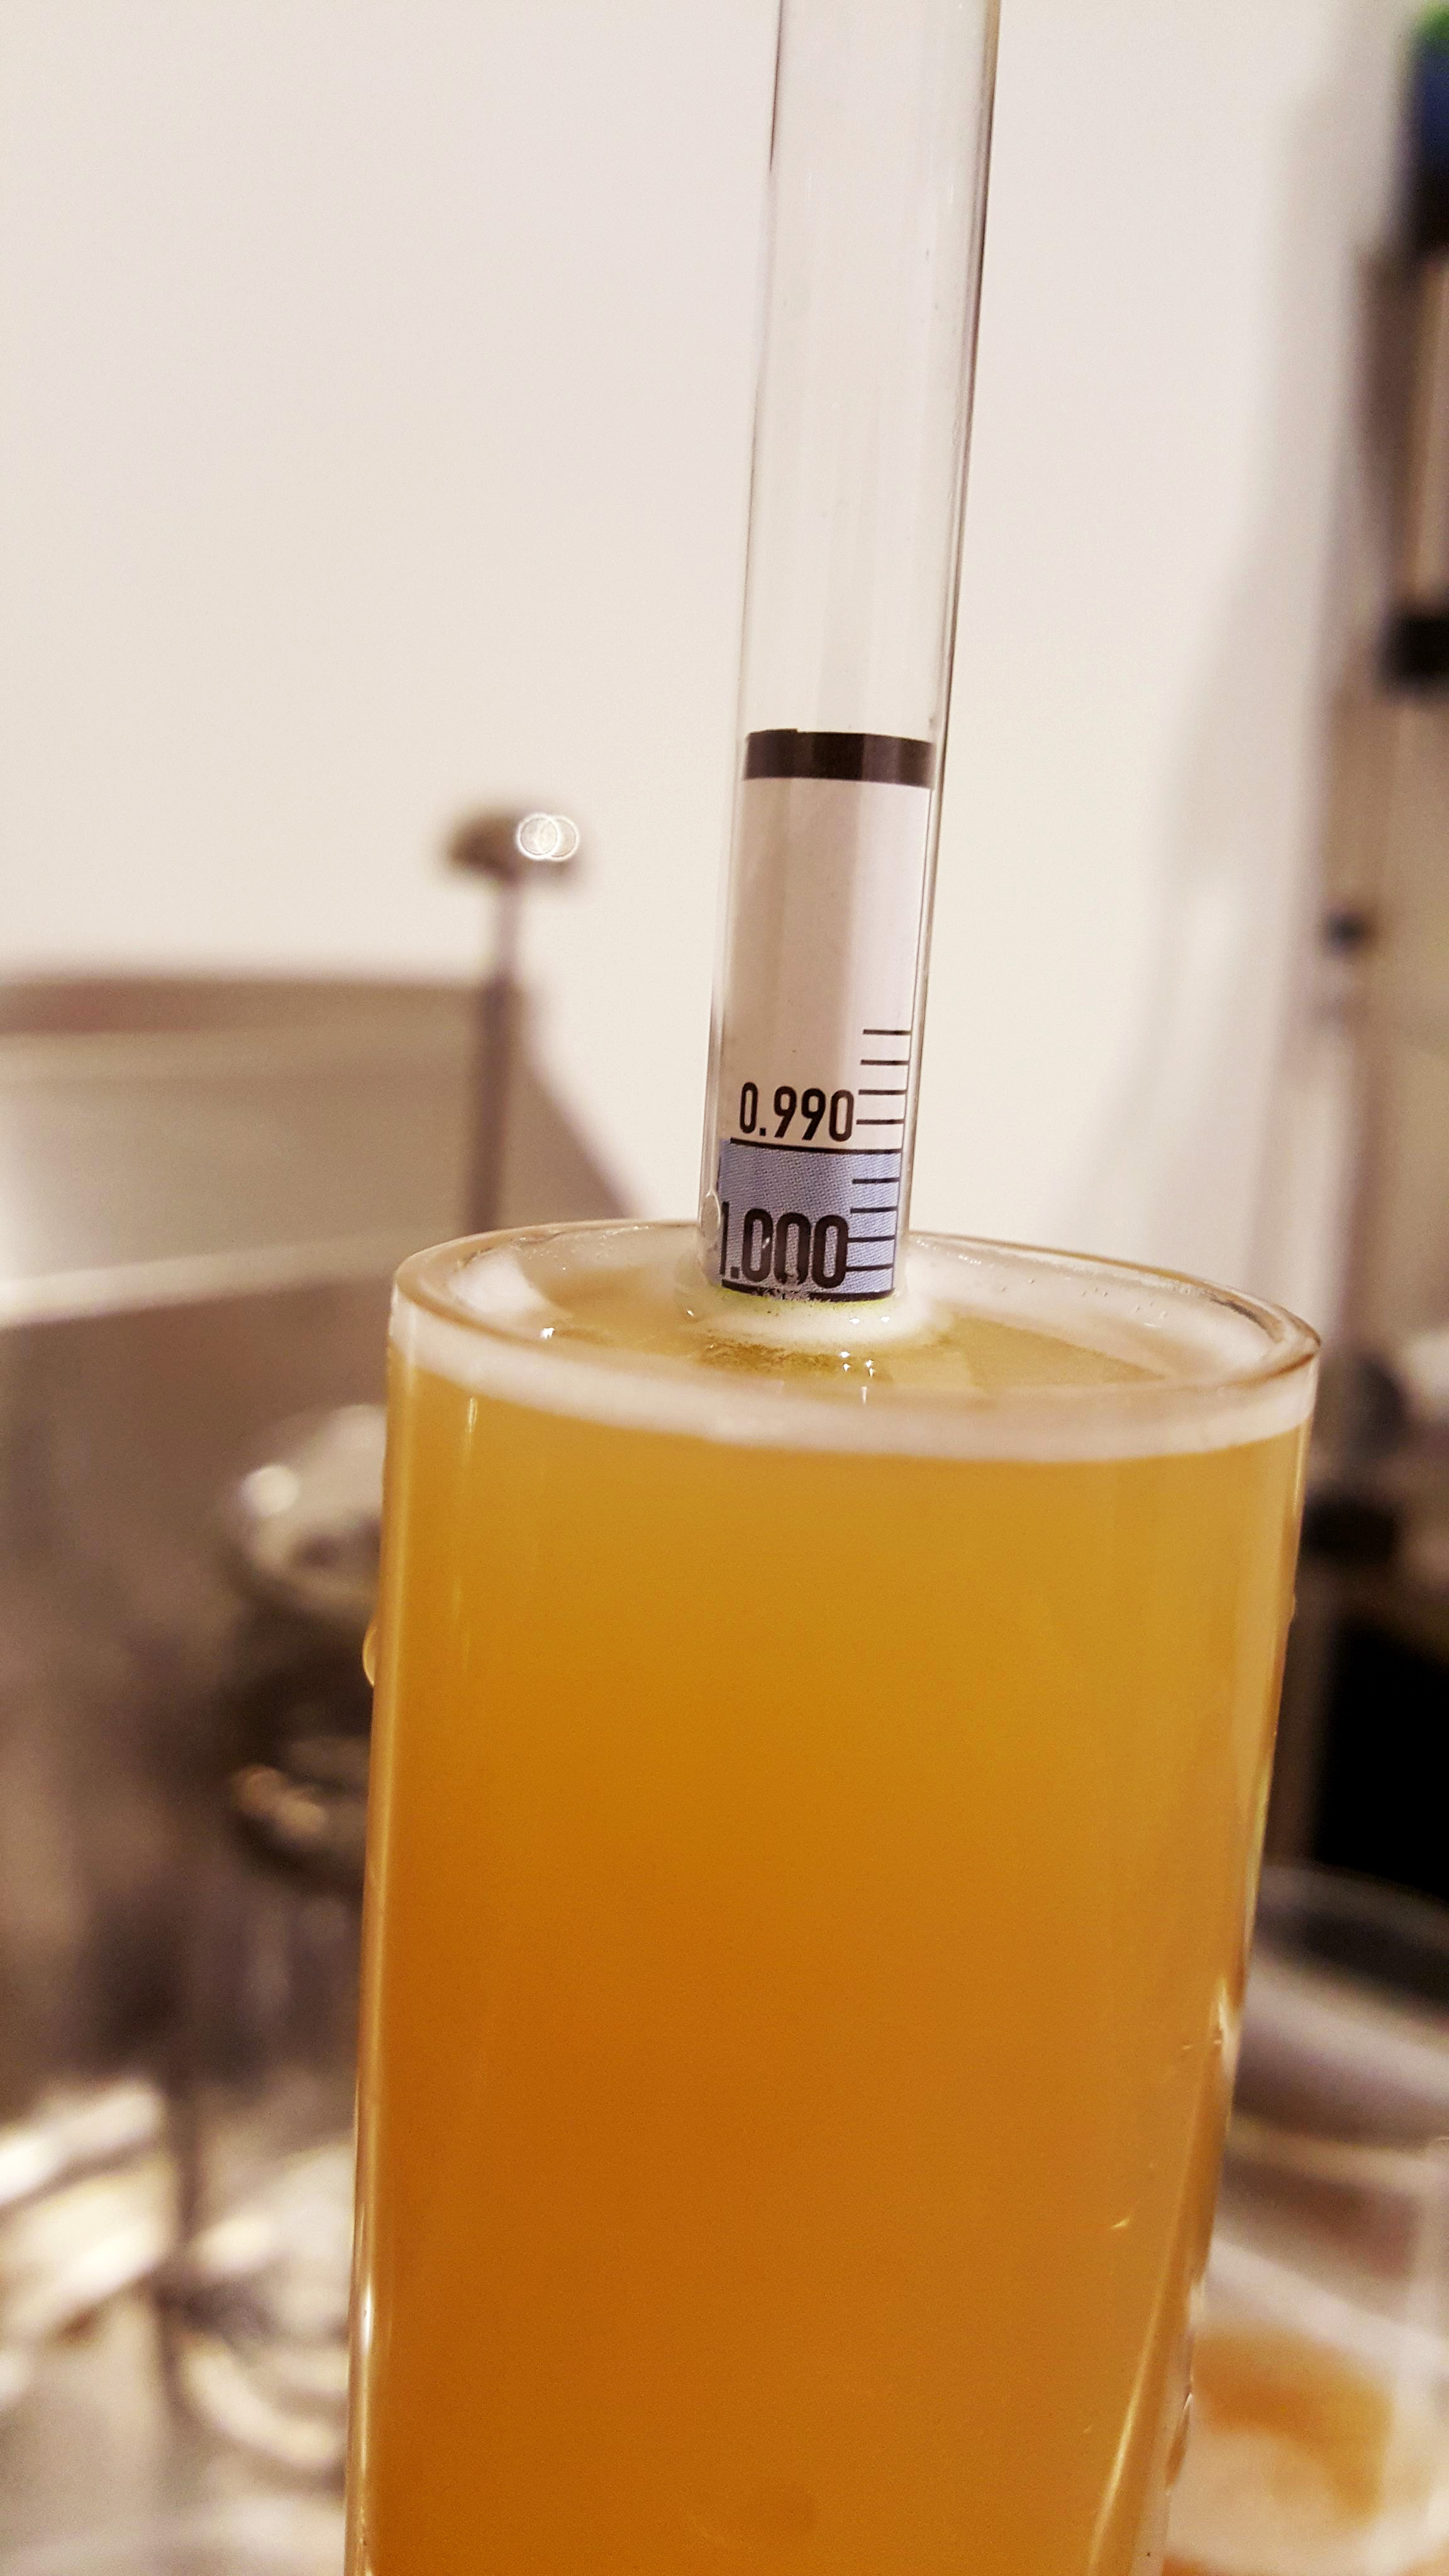 13 days in the fermenter, and it's at 96.2% attenuation.